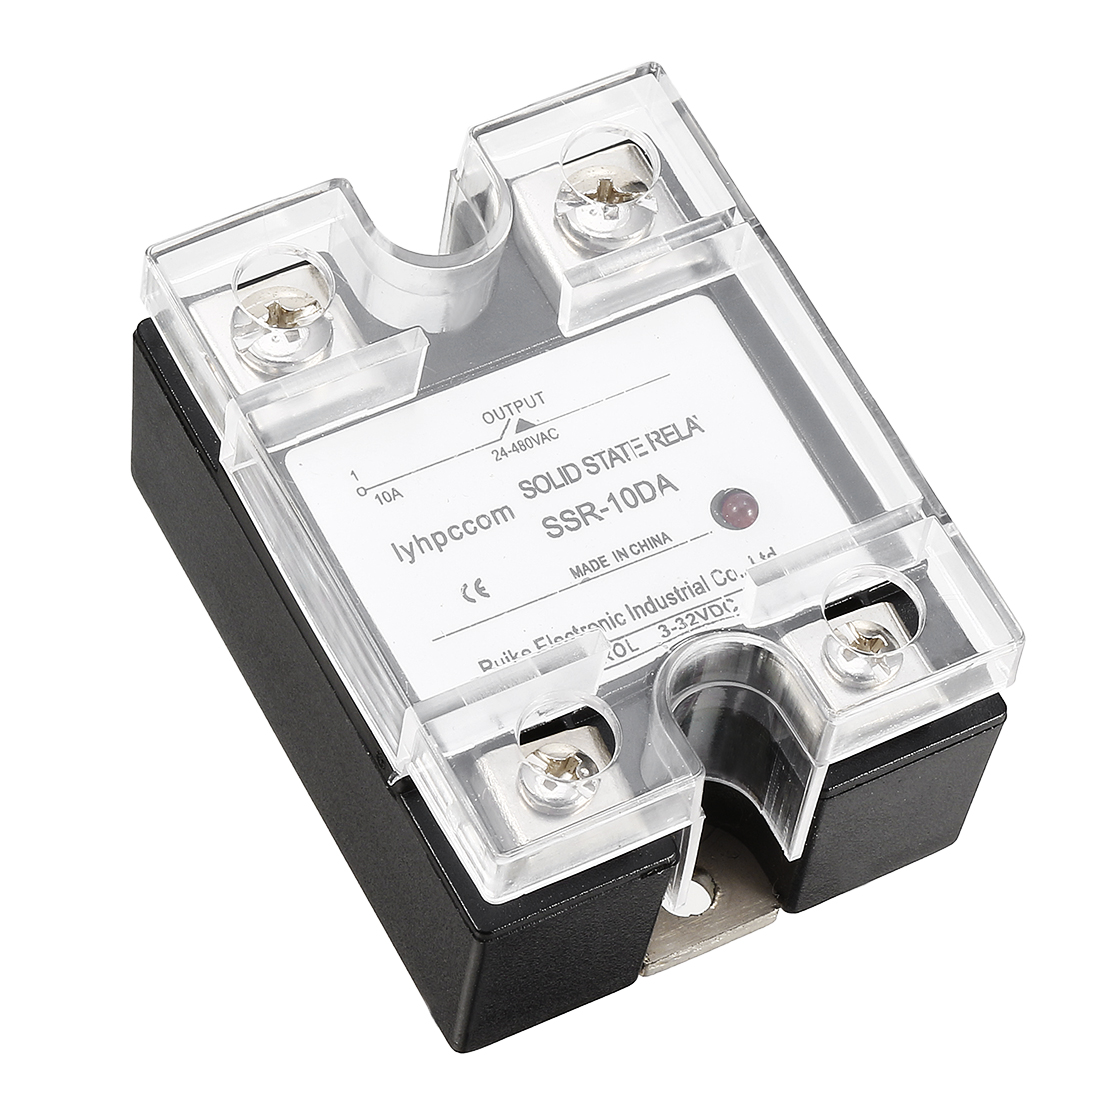 DC to AC DC 3-32V to AC 24-480V 10A Single Phase SSR Solid State Relay